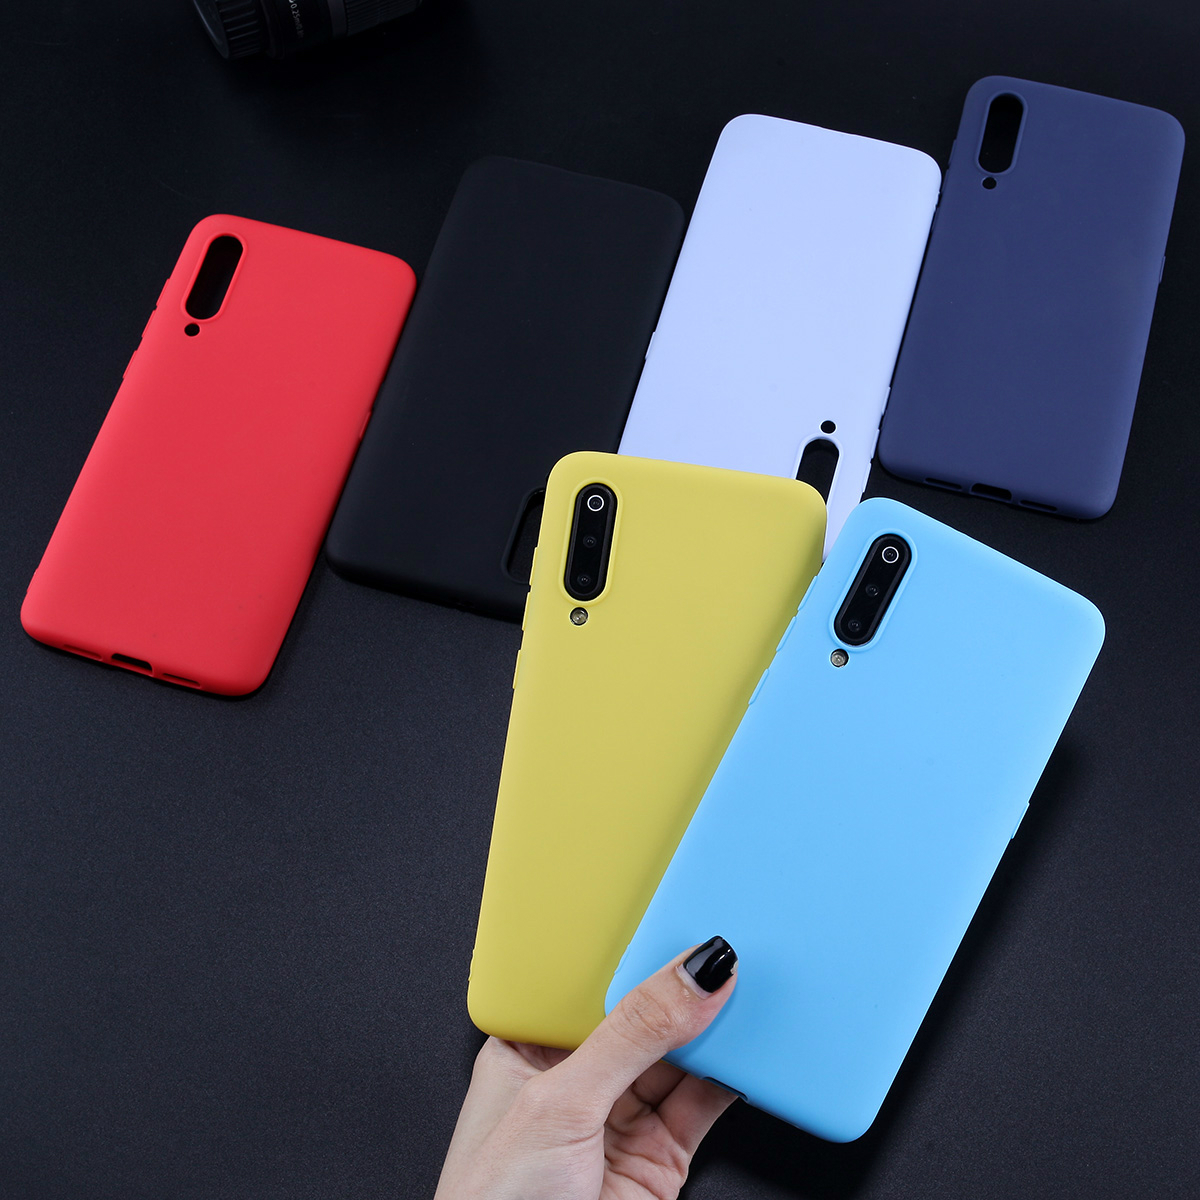 Case For Xiaomi Redmi Mi 8 Candy Color Cover For Xiaomi Mi 9 8 Lite Redmi 4X 4A 5A 5Plus 6Pro Note 7 5 6 Pro TPU Silicone Capas in Fitted Cases from Cellphones Telecommunications